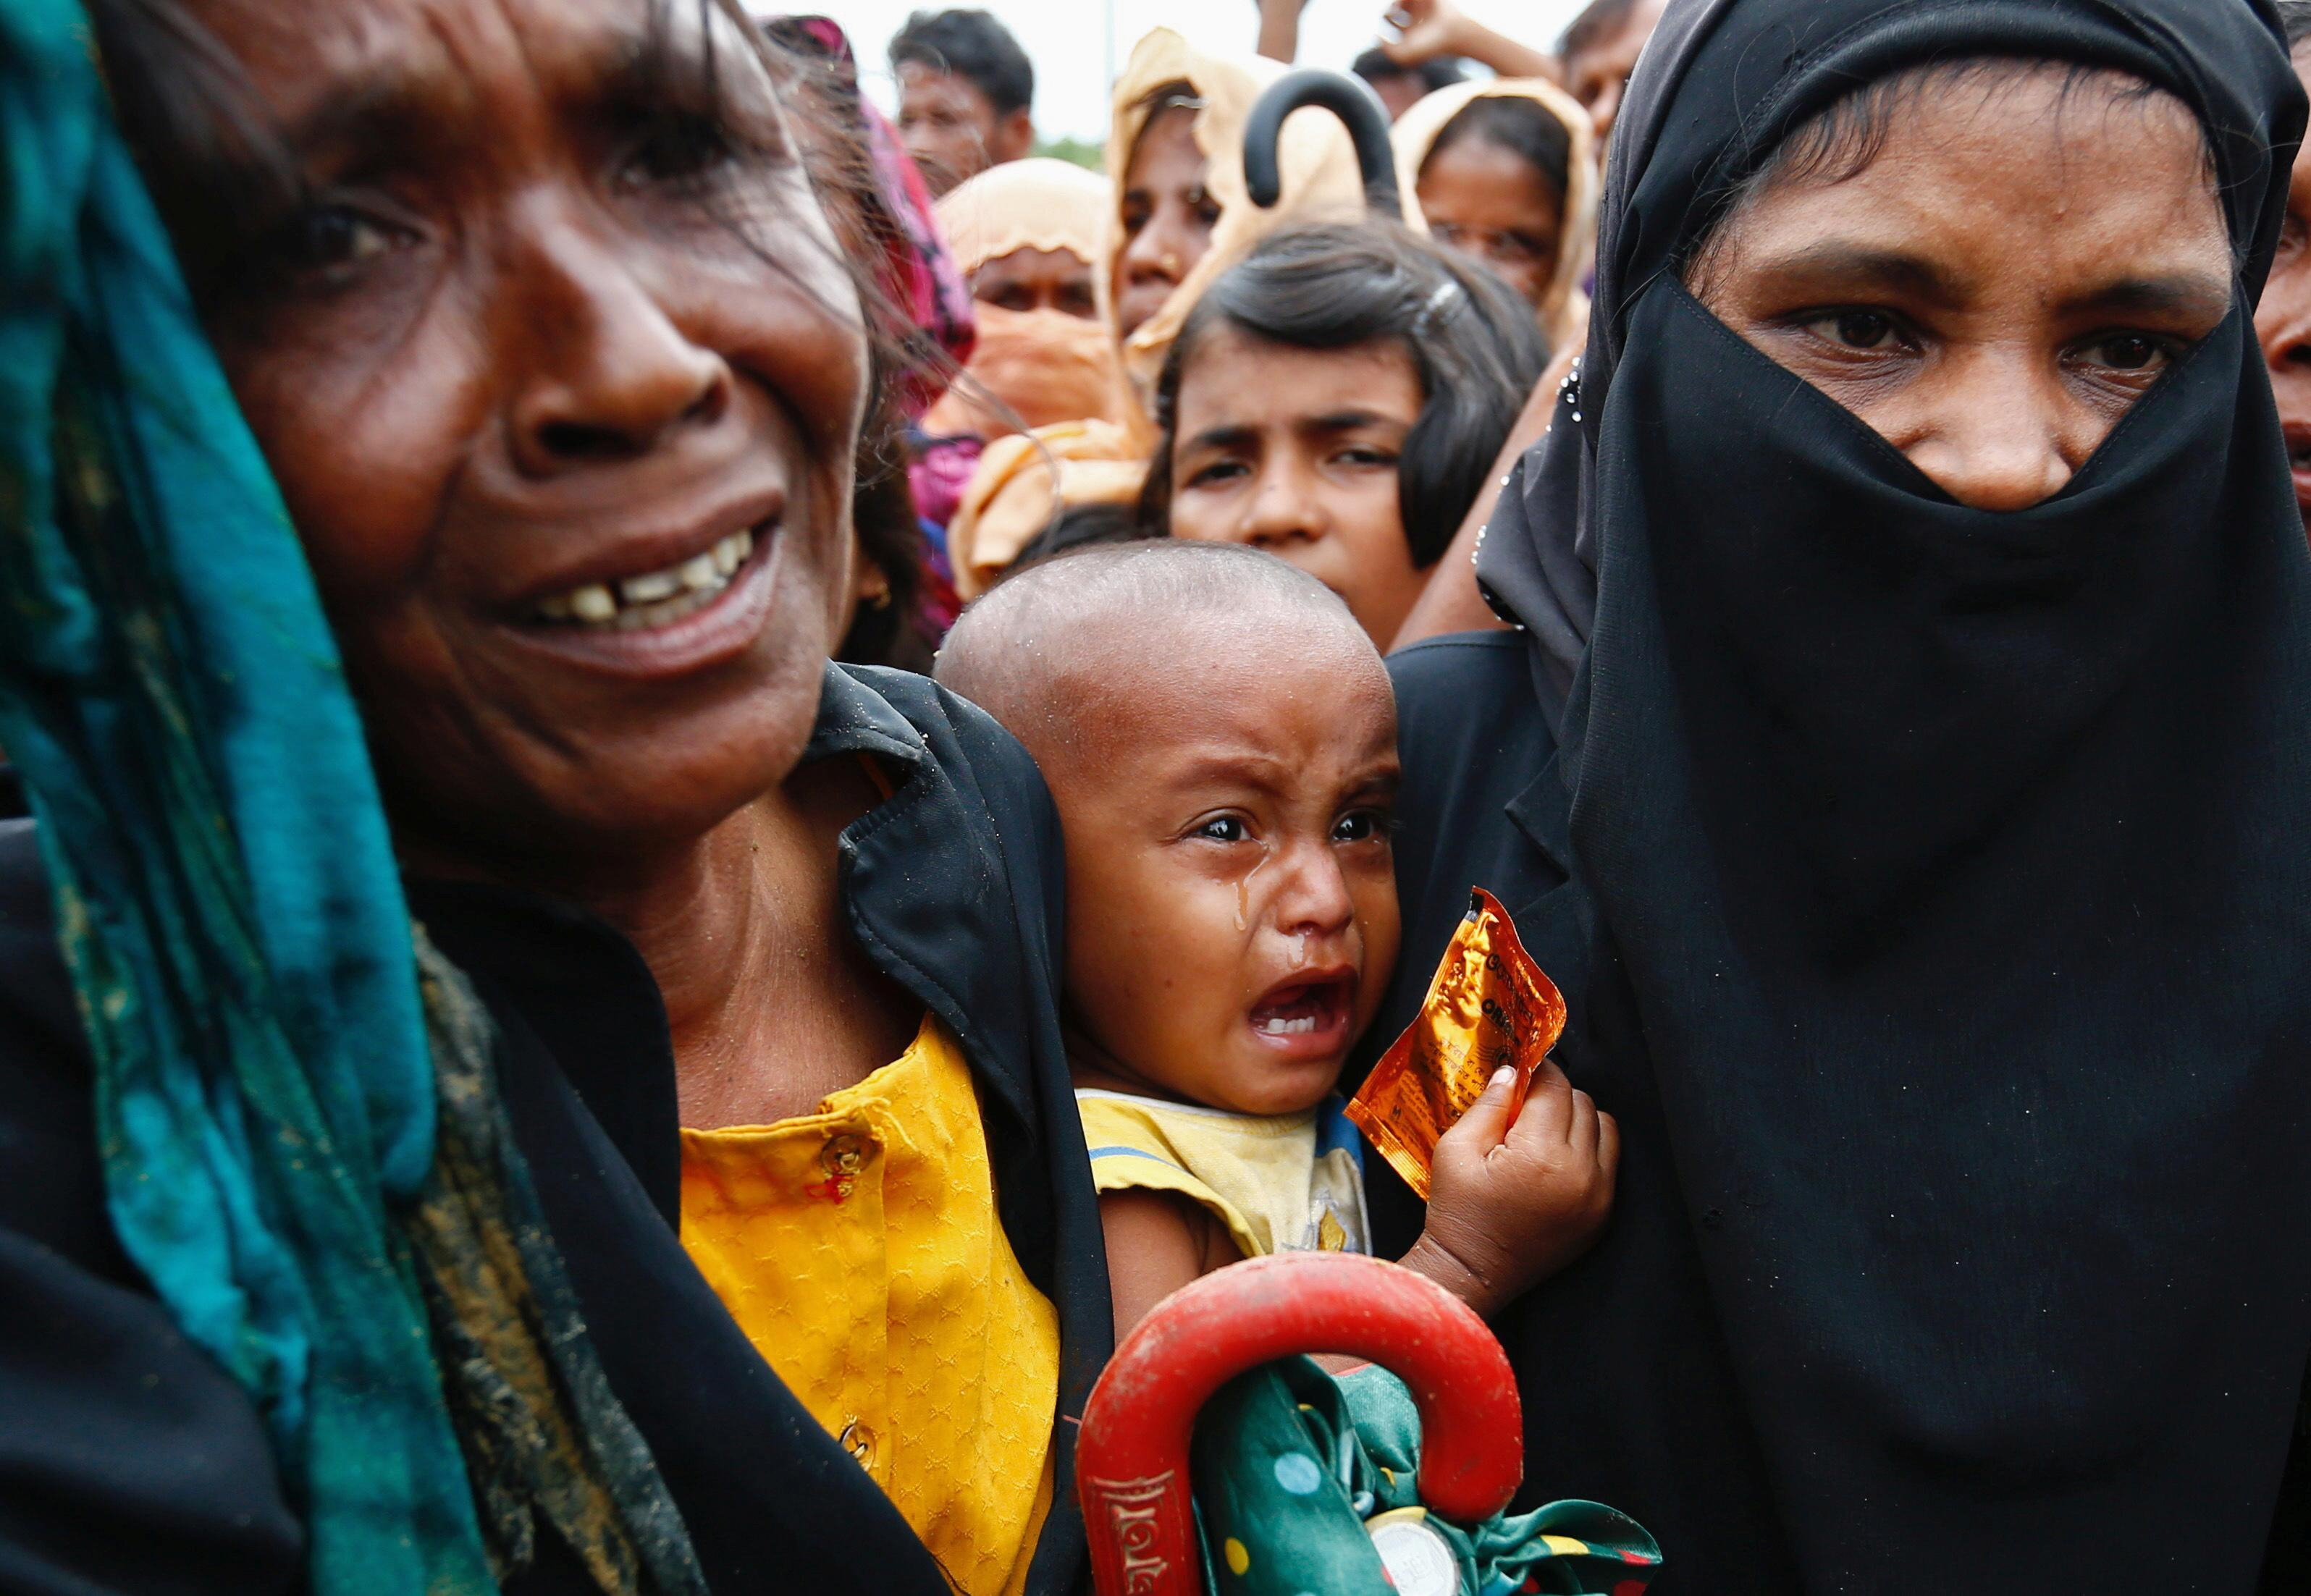 <p>A Rohingya refugee baby cries as his mother jostles for aid in Cox's Bazar, Bangladesh, Sept. 20, 2017. (Photo: Danish Siddiqui/Reuters) </p>